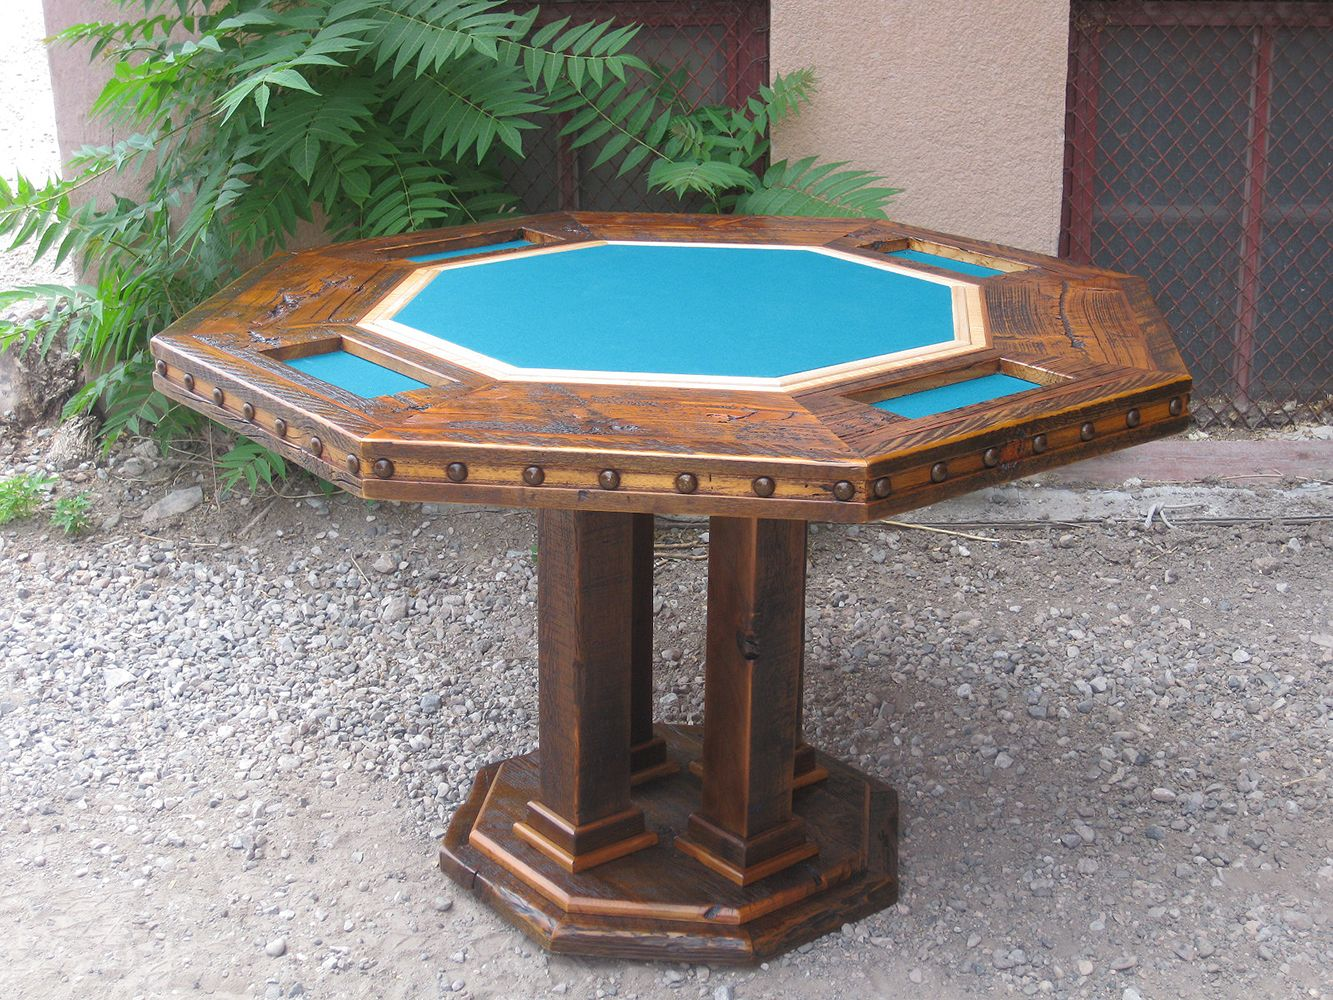 Beautiful Rustic Poker Table With Its Blue Felt And Poker Chip Trays Ready  To Go!